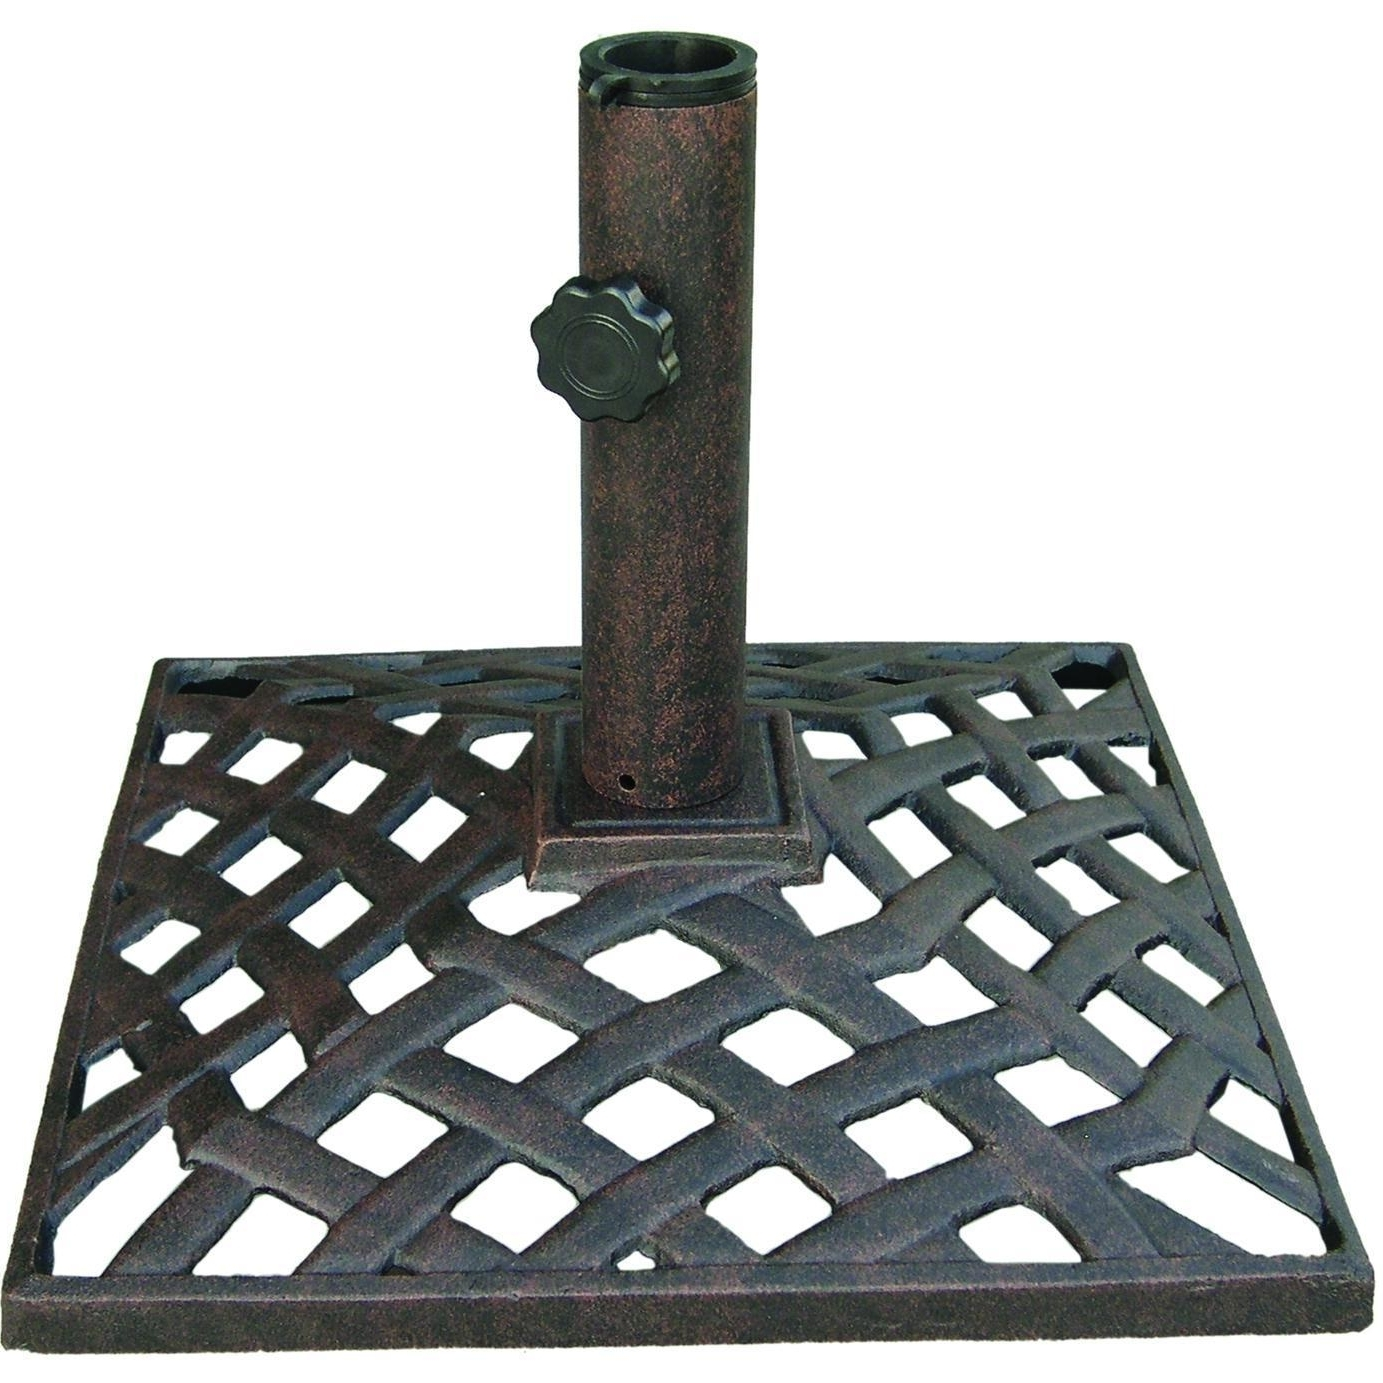 Patio Umbrellas And Bases With Regard To Widely Used Darlee 35 Lb Basket Weave Cast Iron Patio Umbrella Base : Ultimate Patio (View 17 of 20)